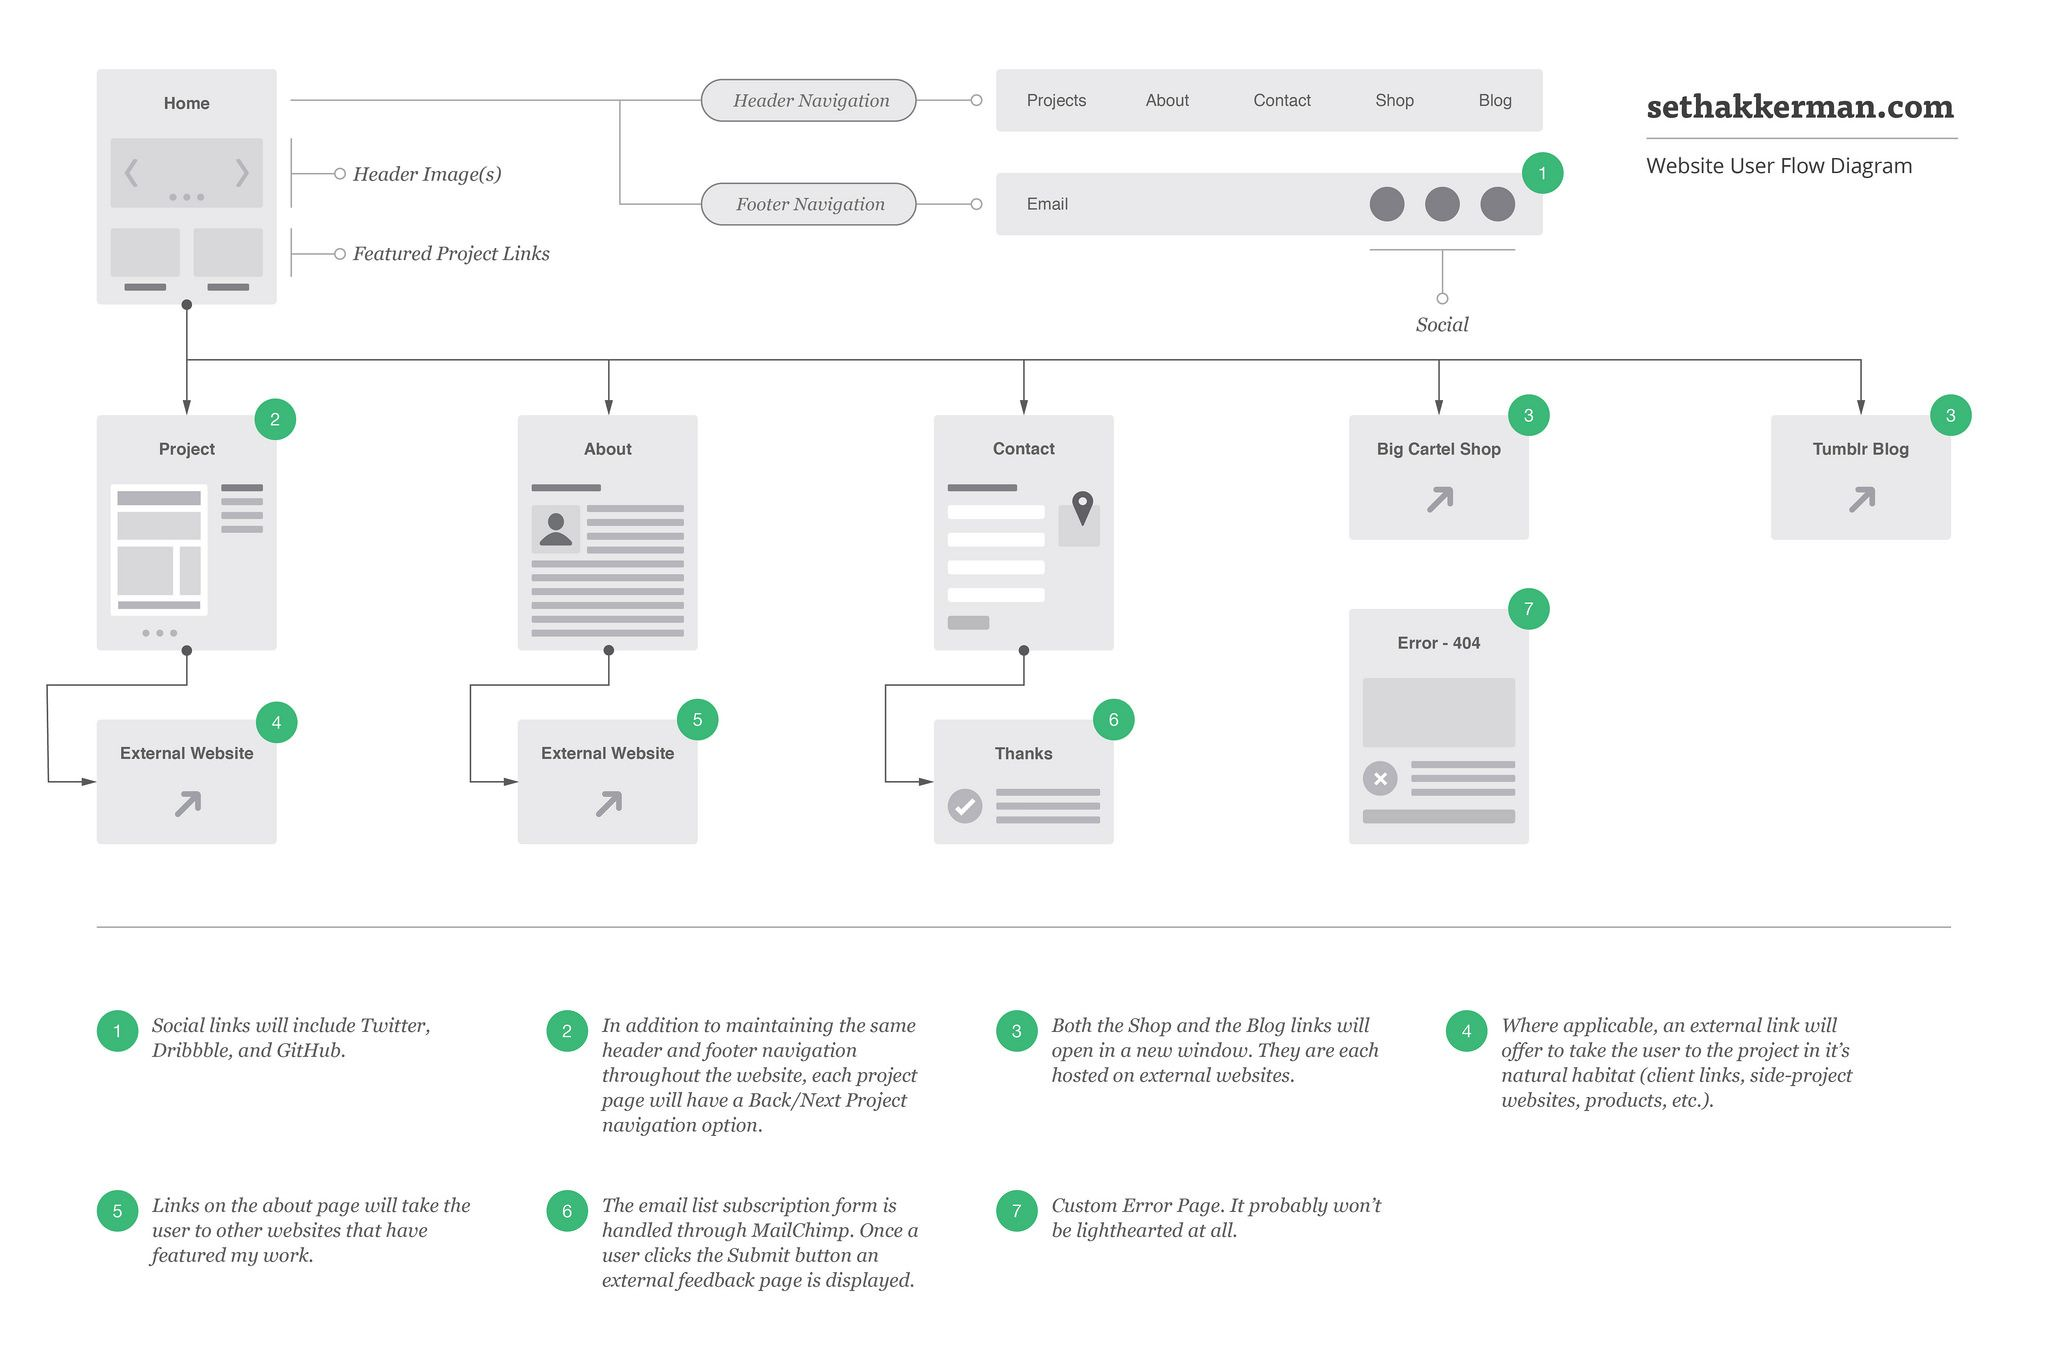 hight resolution of website user flow diagram seth akkerman webdesign web page design flow chart web design flow diagram